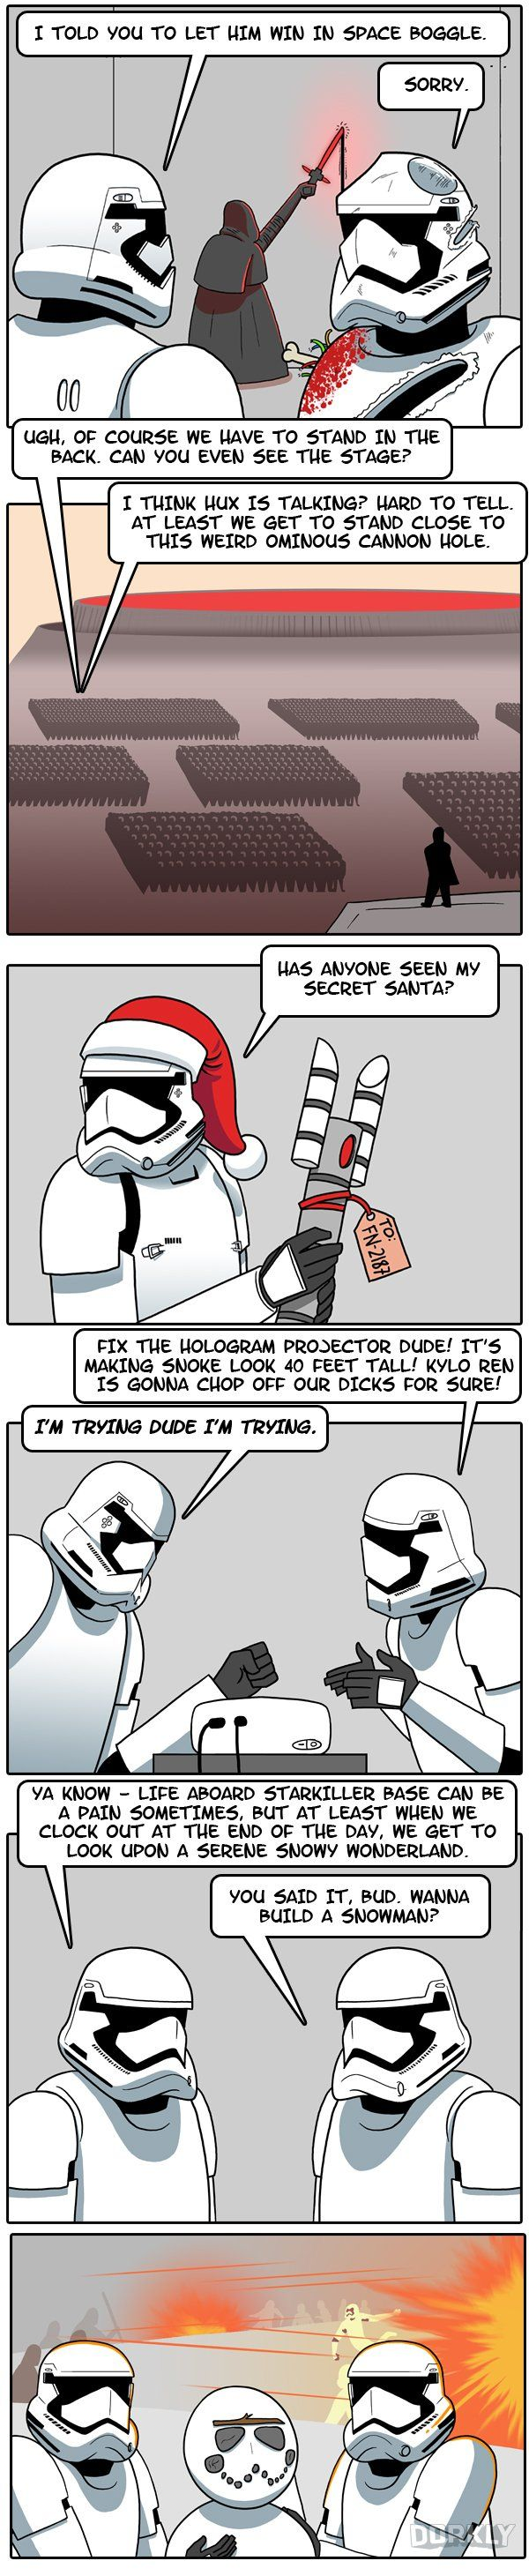 """""""The Shitty Life of Every Stormtrooper"""" by Dorkly - See More at http://randomoverload.org"""